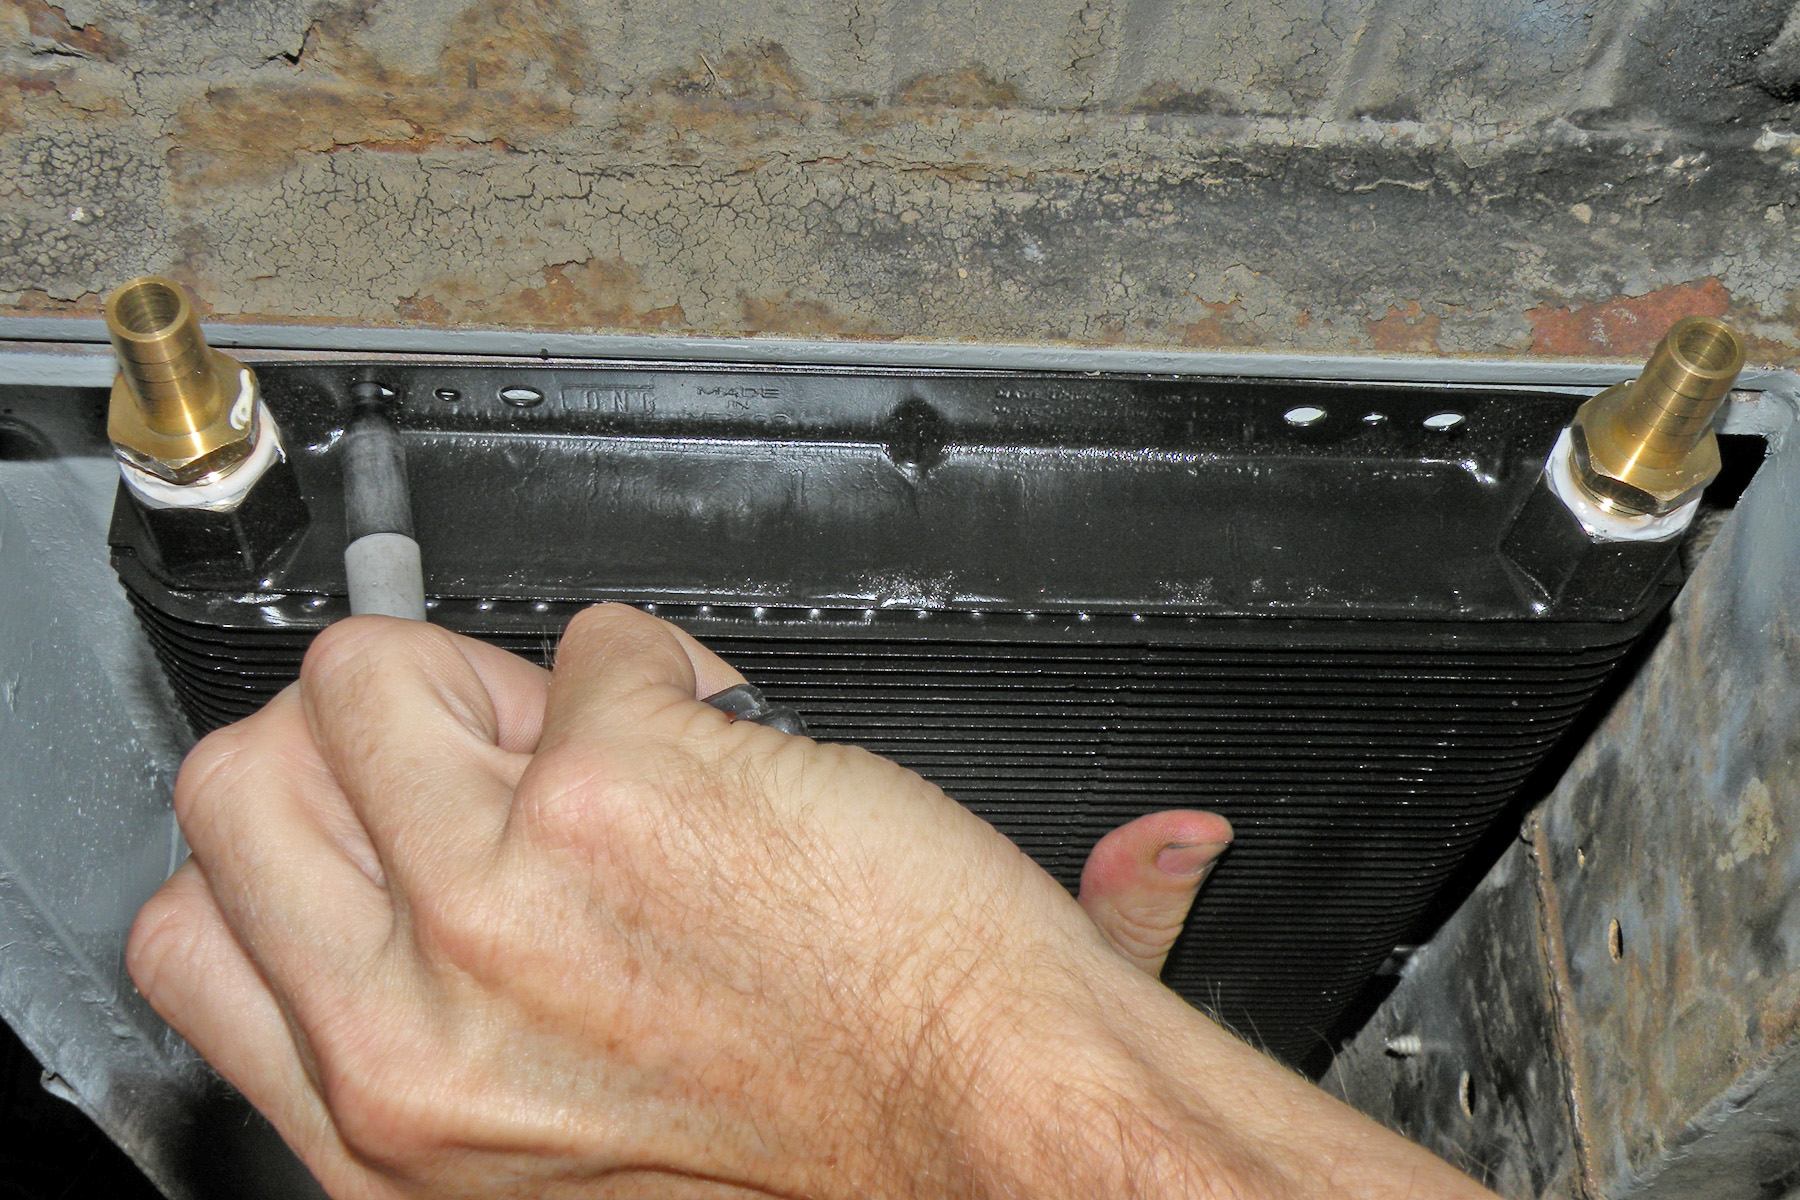 Mounting an external oil cooler on an early bus